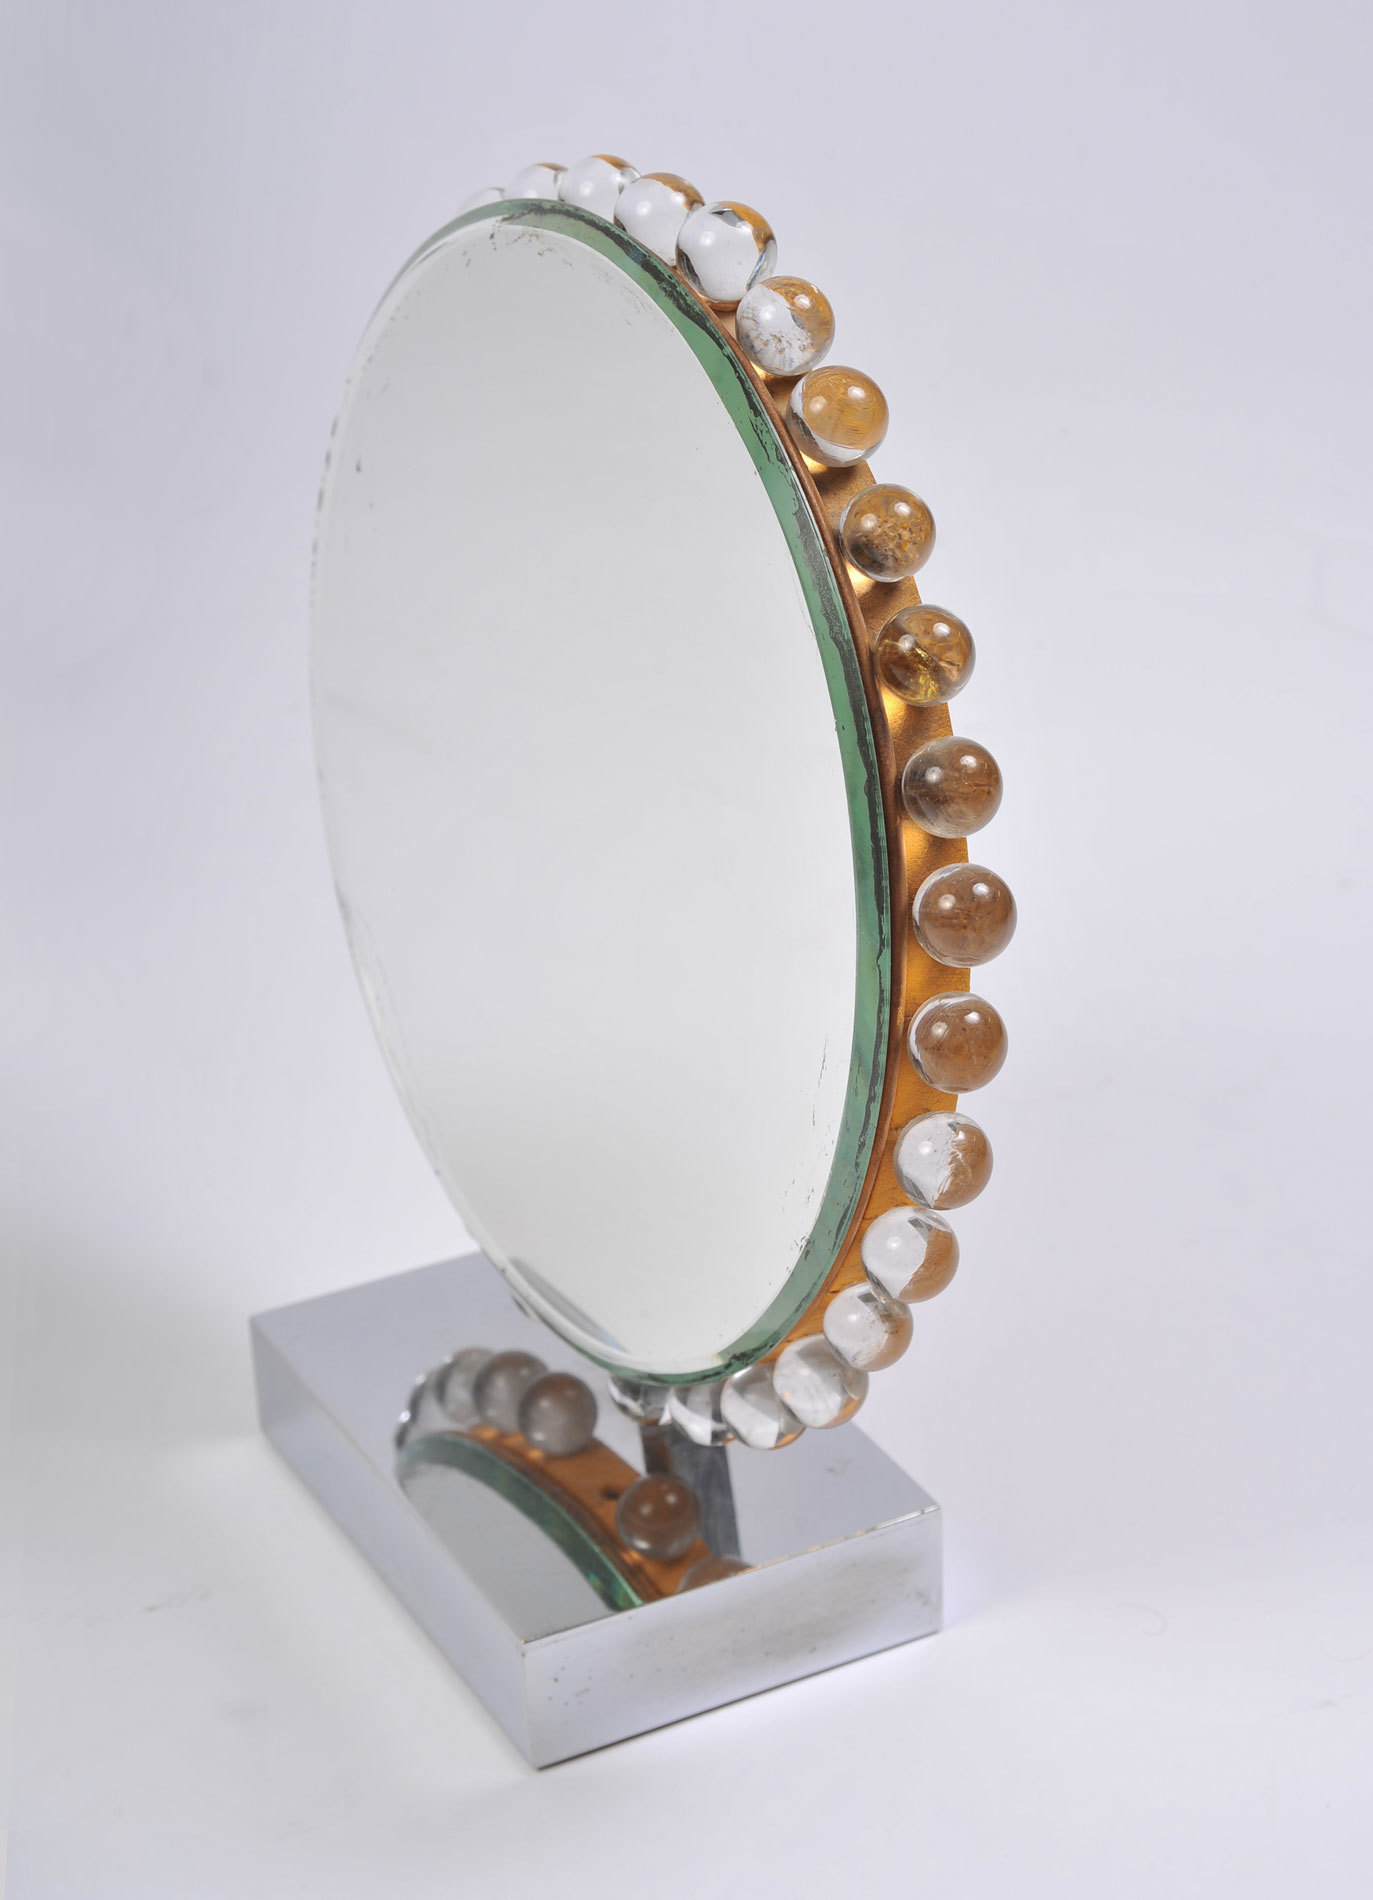 The image for Circular Ball Mirror 03